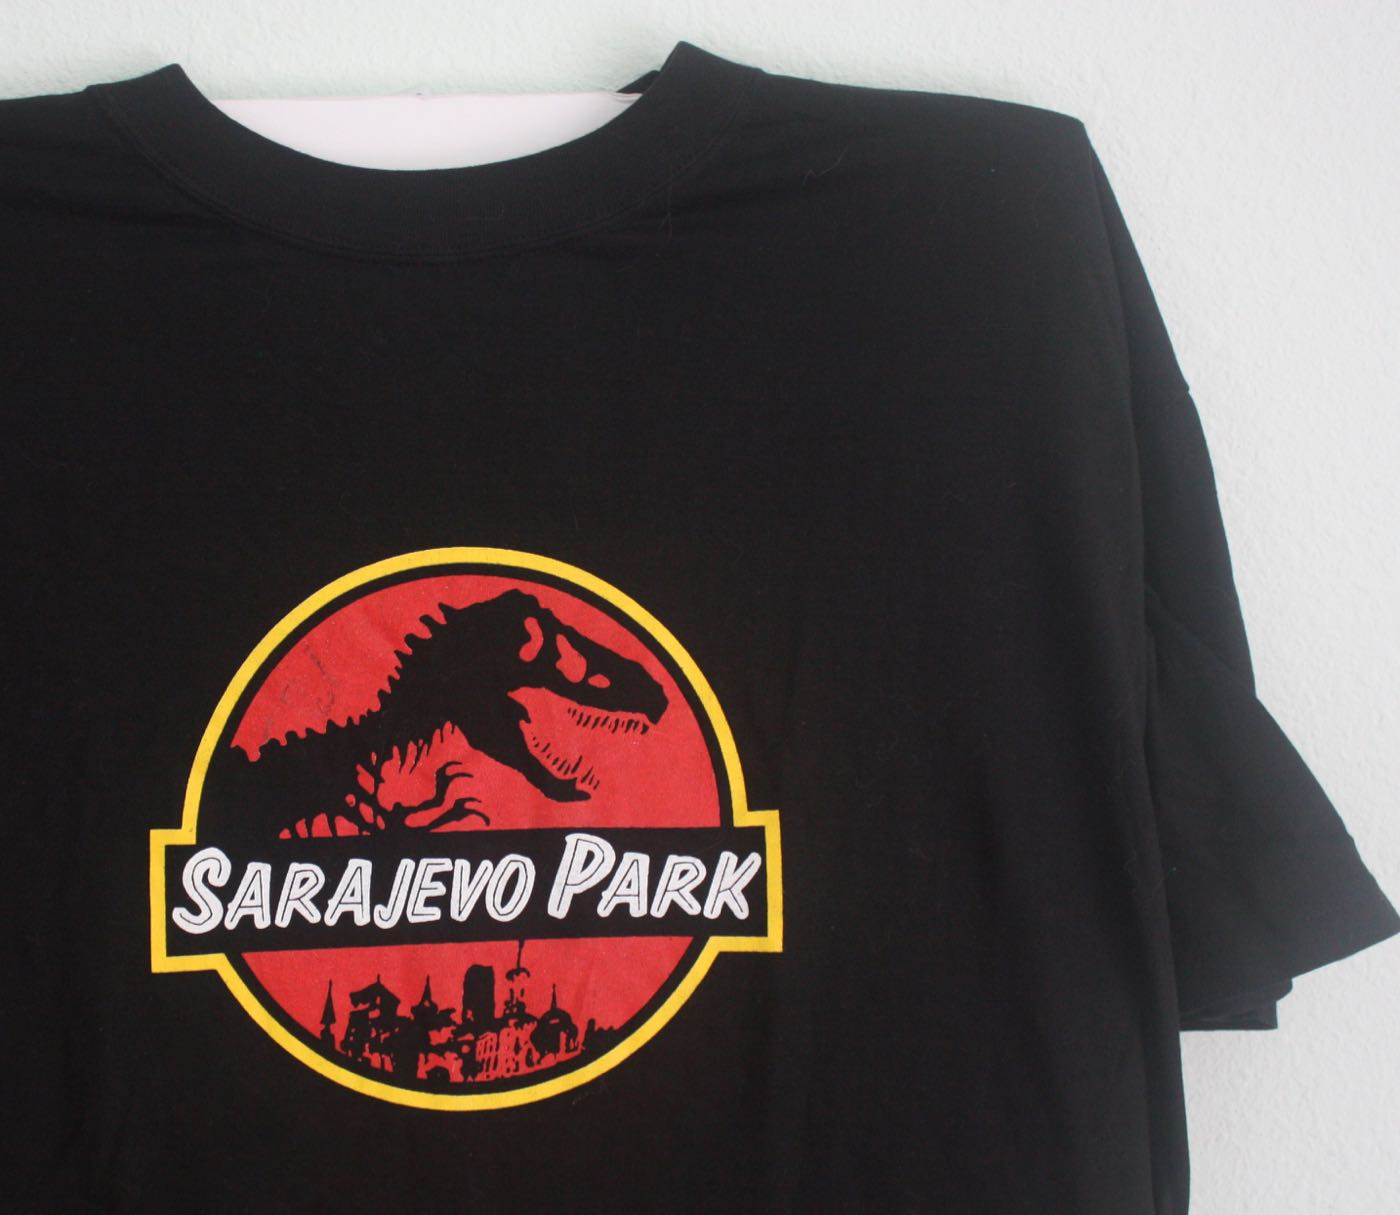 Sarjevo Park Graphic Artists Under Siege Tee